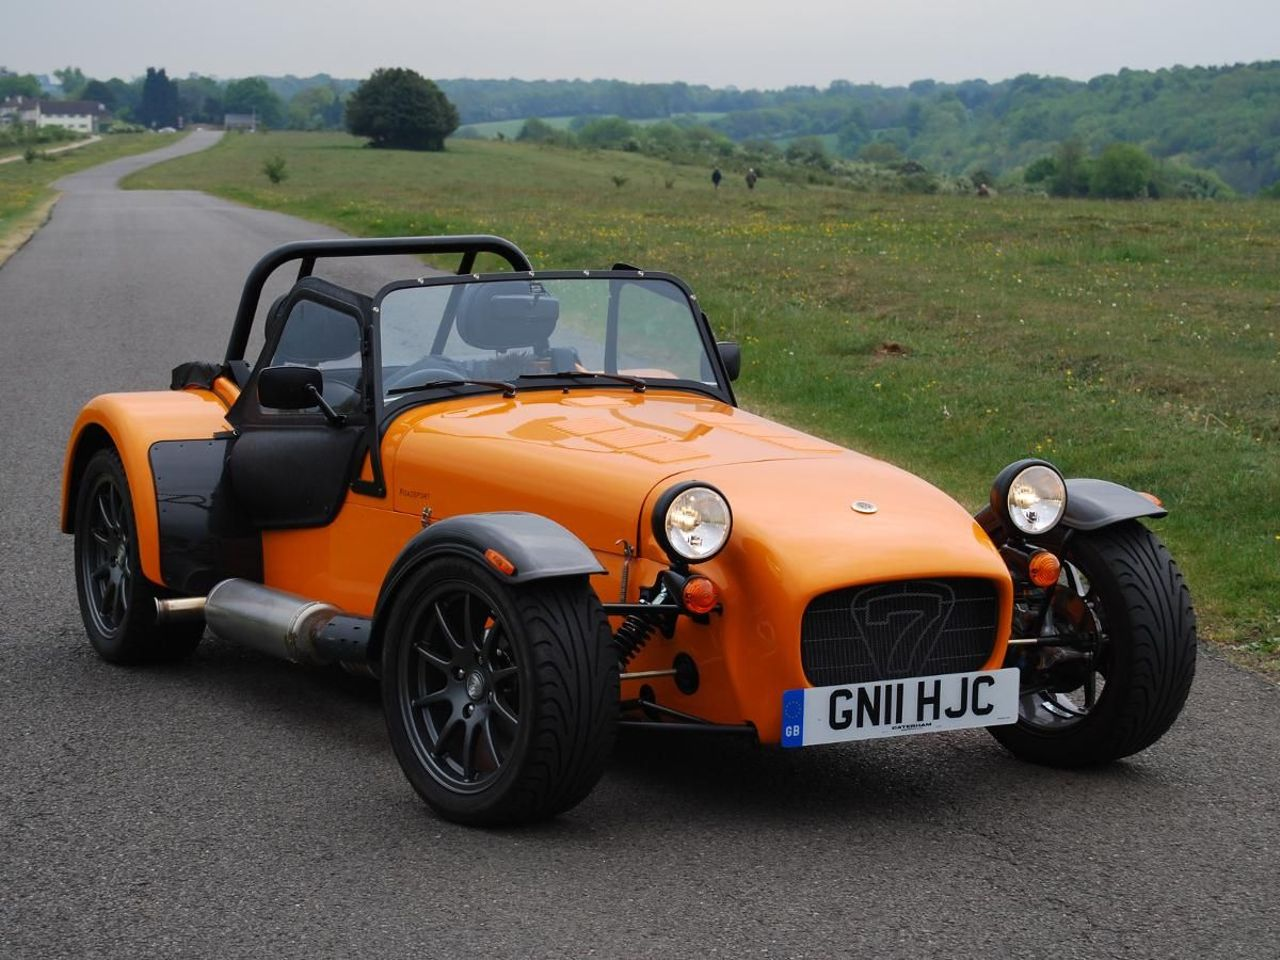 Caterham Roadsport convertible